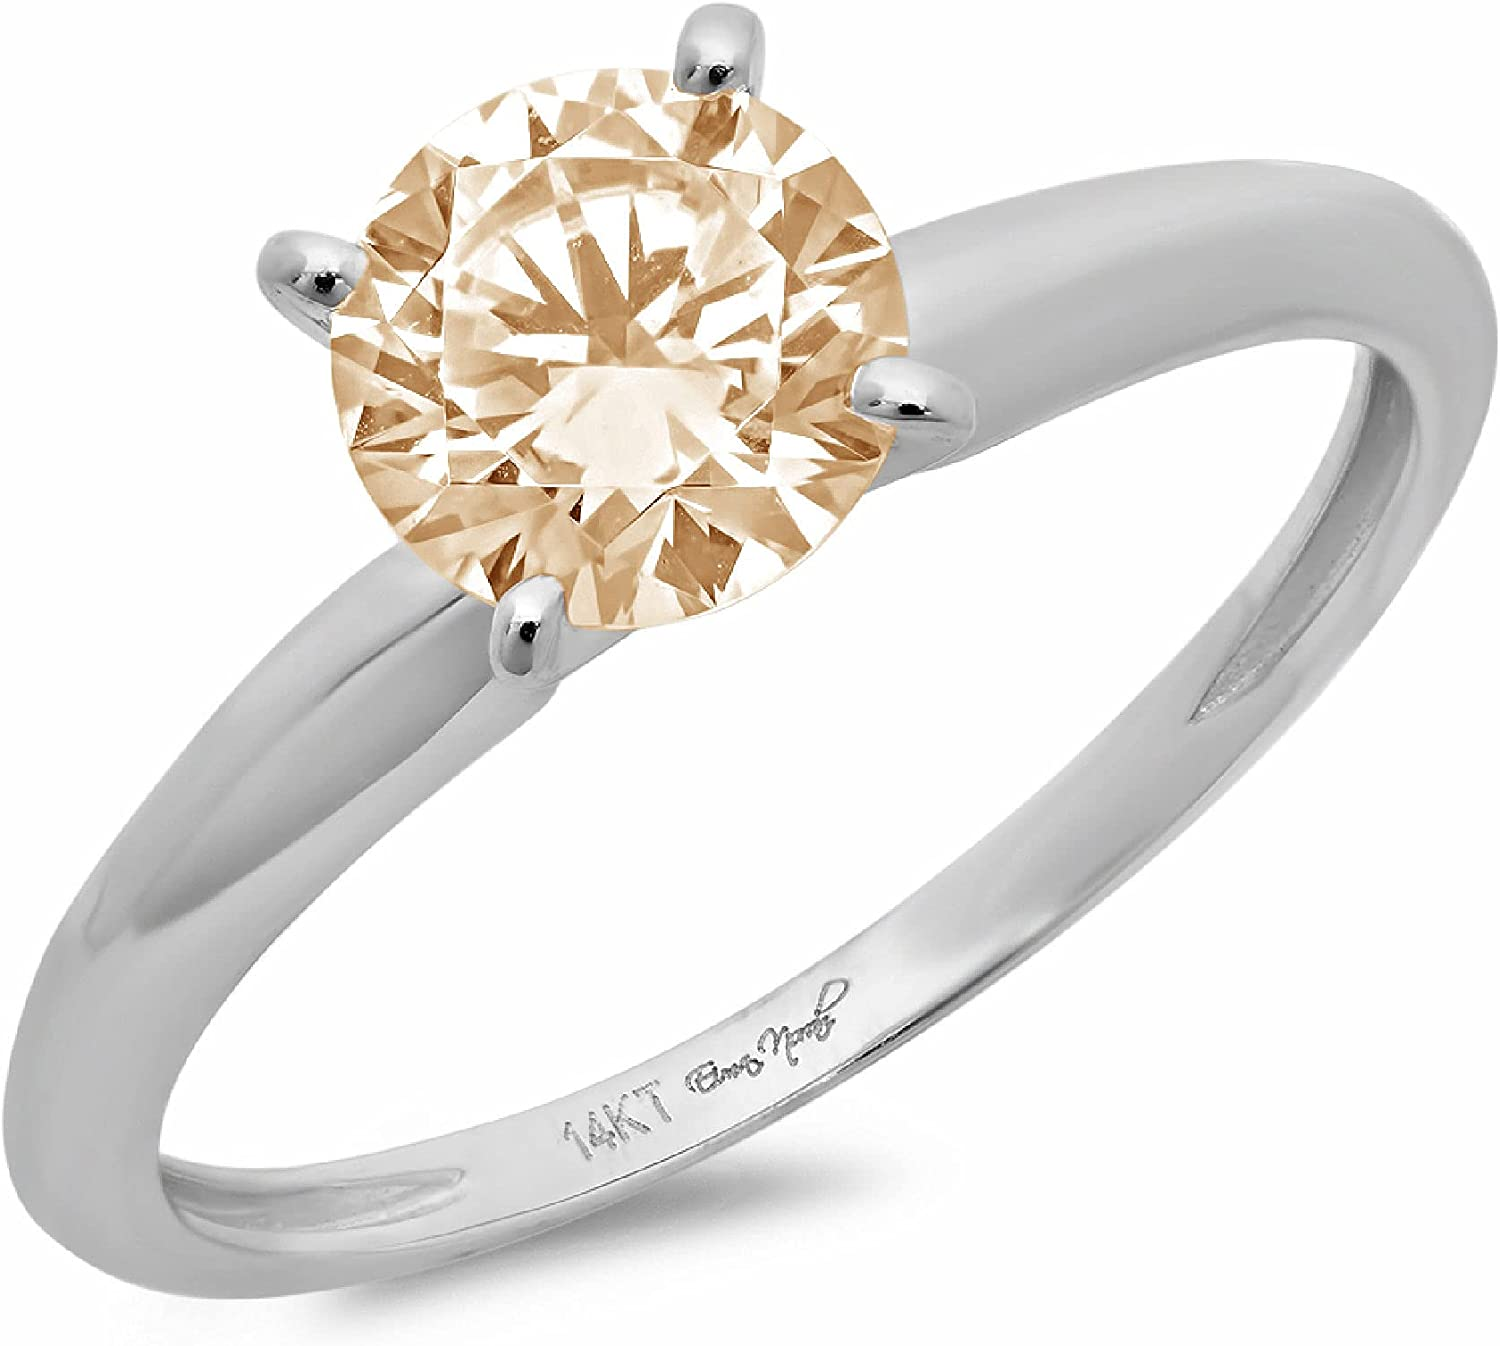 1.50 ct Brilliant Round Cut Solitaire Flawless Stunning Yellow Moissanite Ideal 4-Prong Engagement Wedding Bridal Promise Anniversary Designer Ring in Solid 18K White Gold for Women